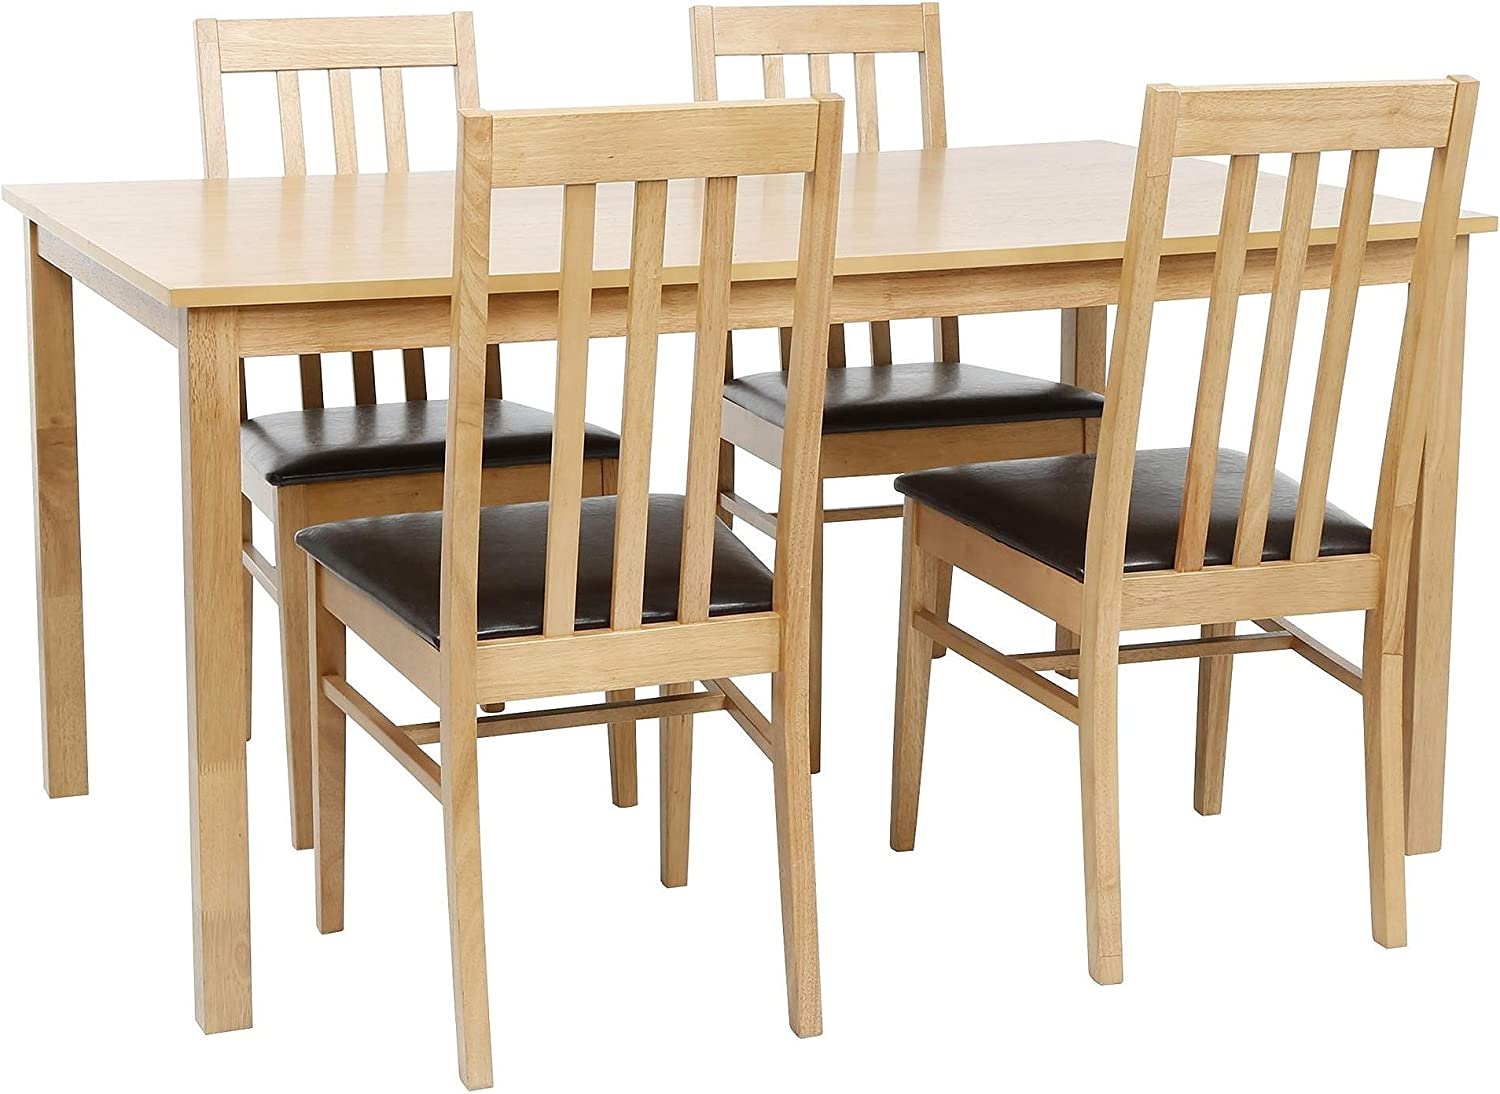 Tesco NEW Truro 11 Seat Dining Table & Chair Set - Oak Effect